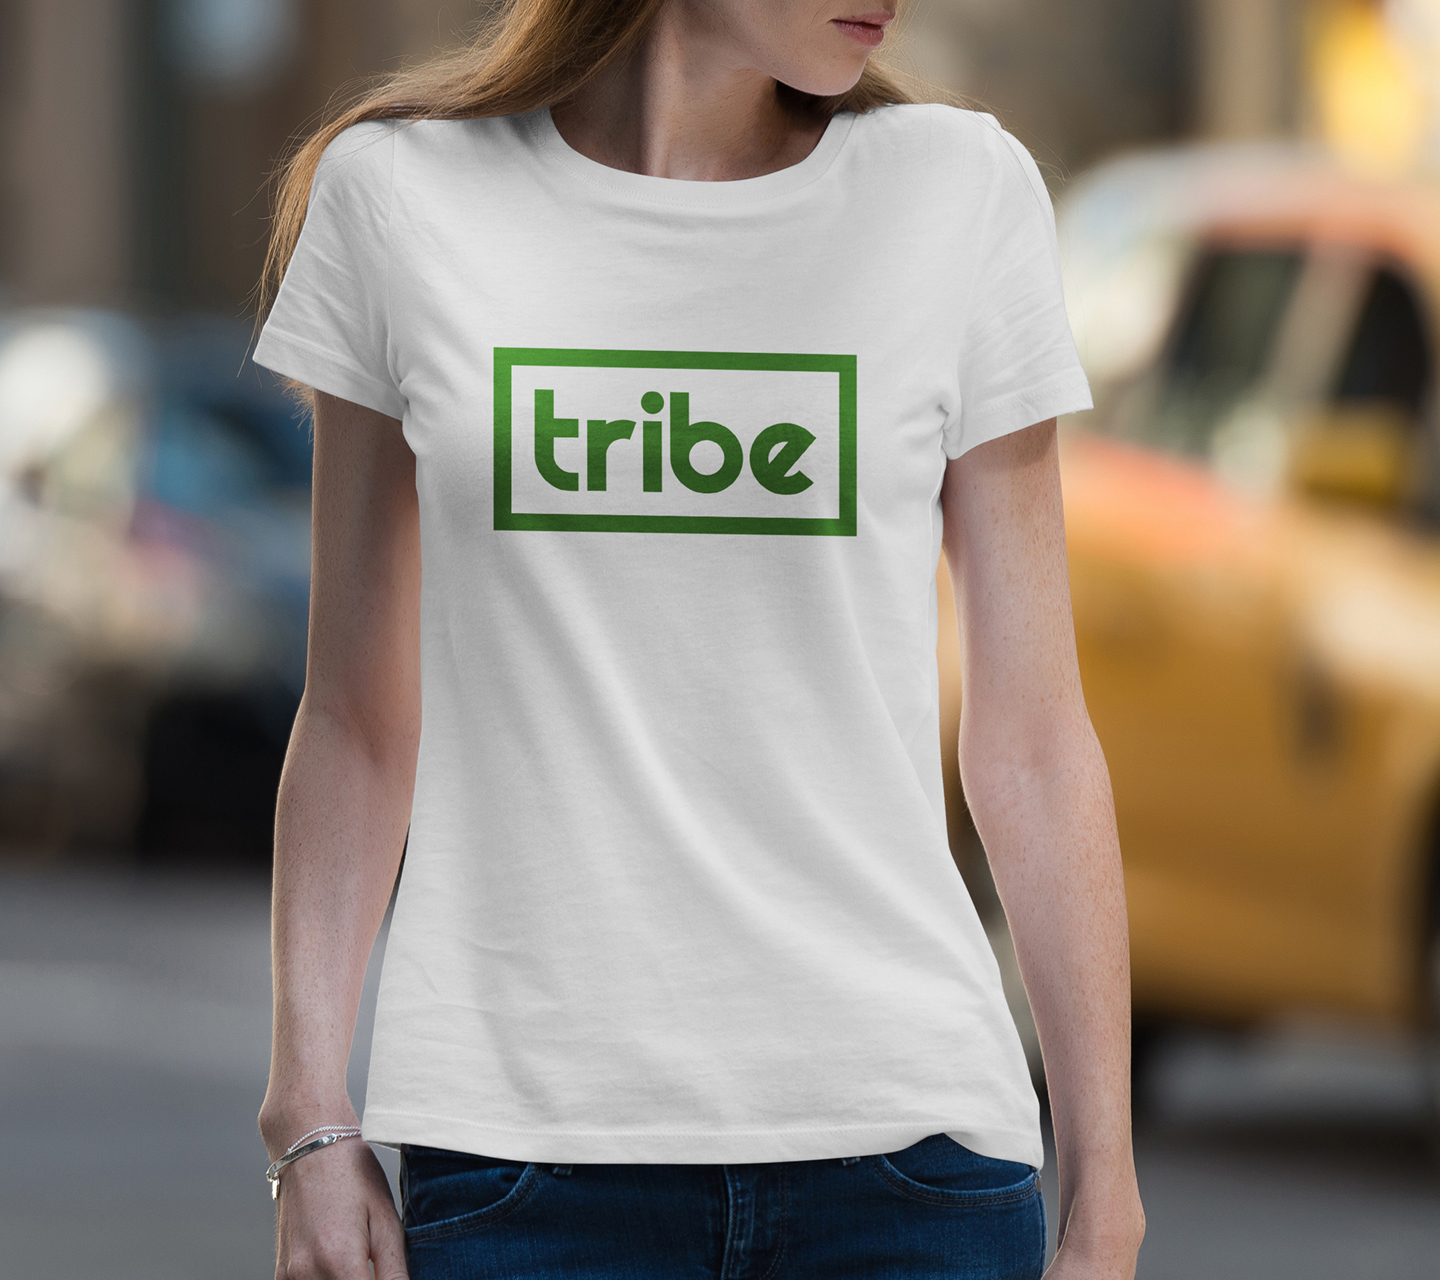 Tribe Cannabis Collection Branded T-shirt by High Road Design Studio